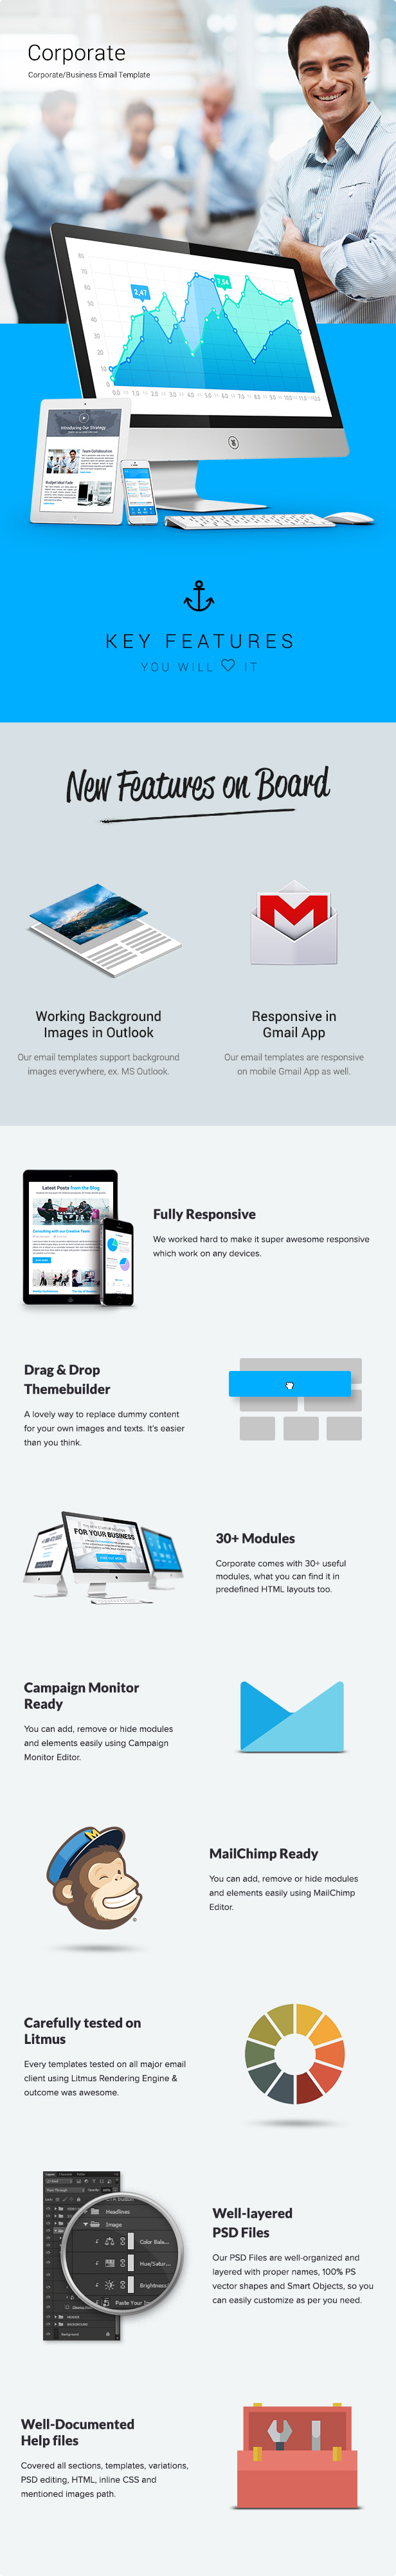 Corporate - Multipurpose B2B E-newsletter Template